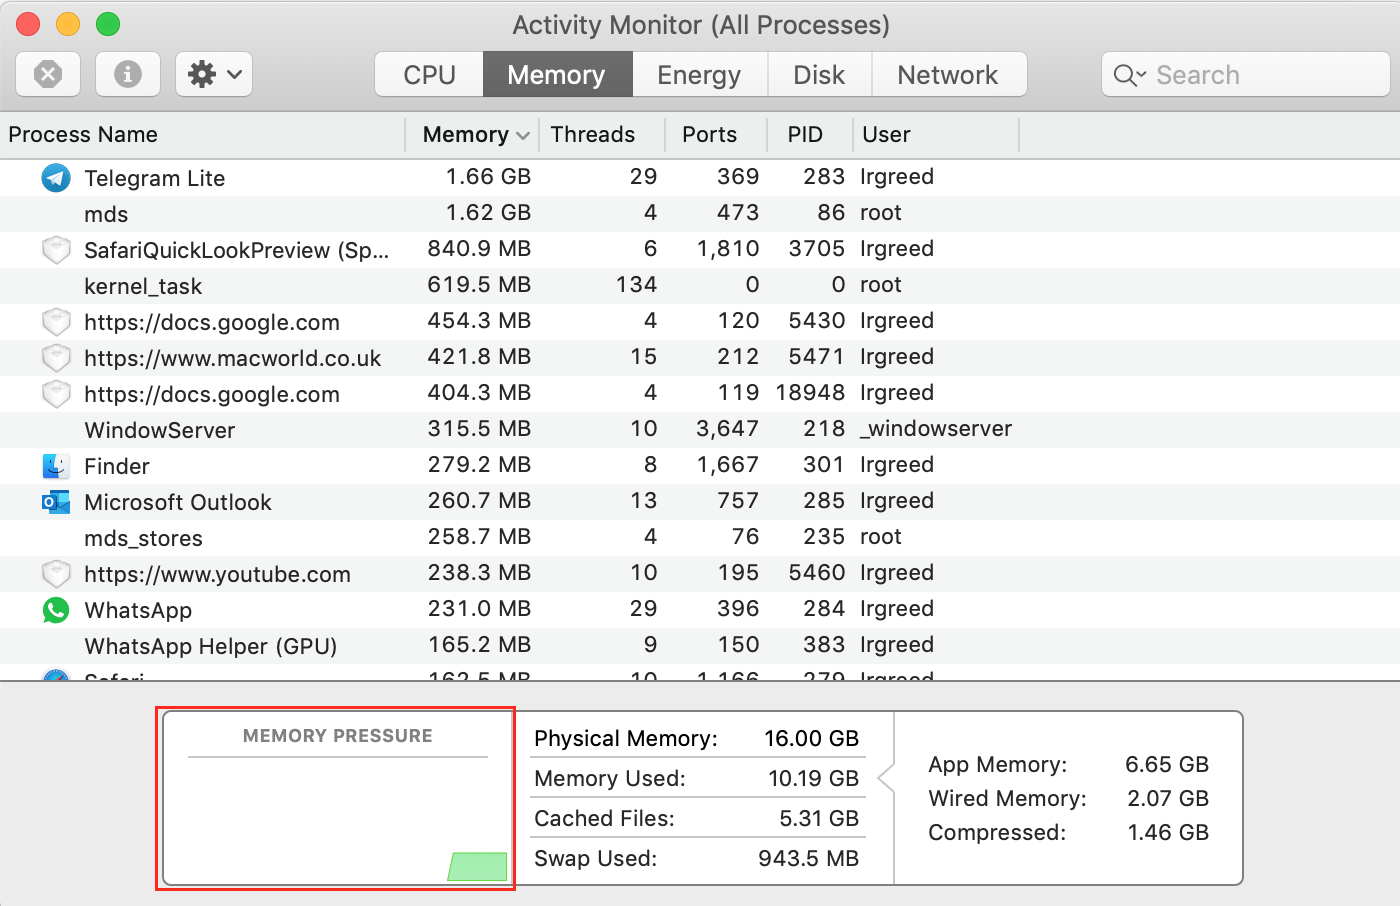 check efficiency of RAM usage in activity monitor memory section